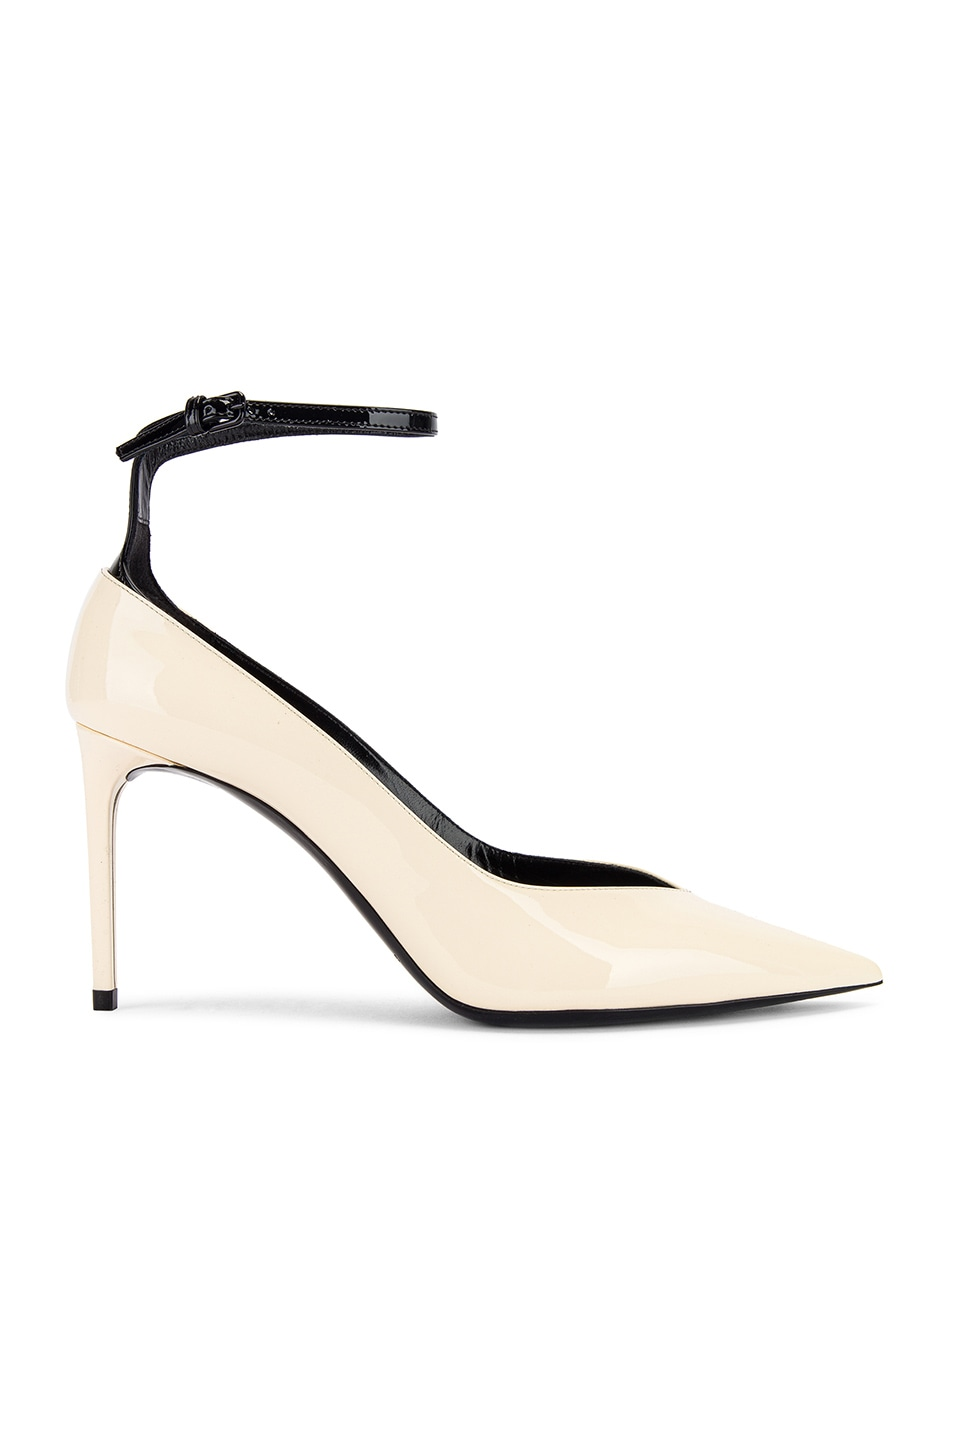 Image 1 of Saint Laurent Zoe Ankle Strap Heels in Black